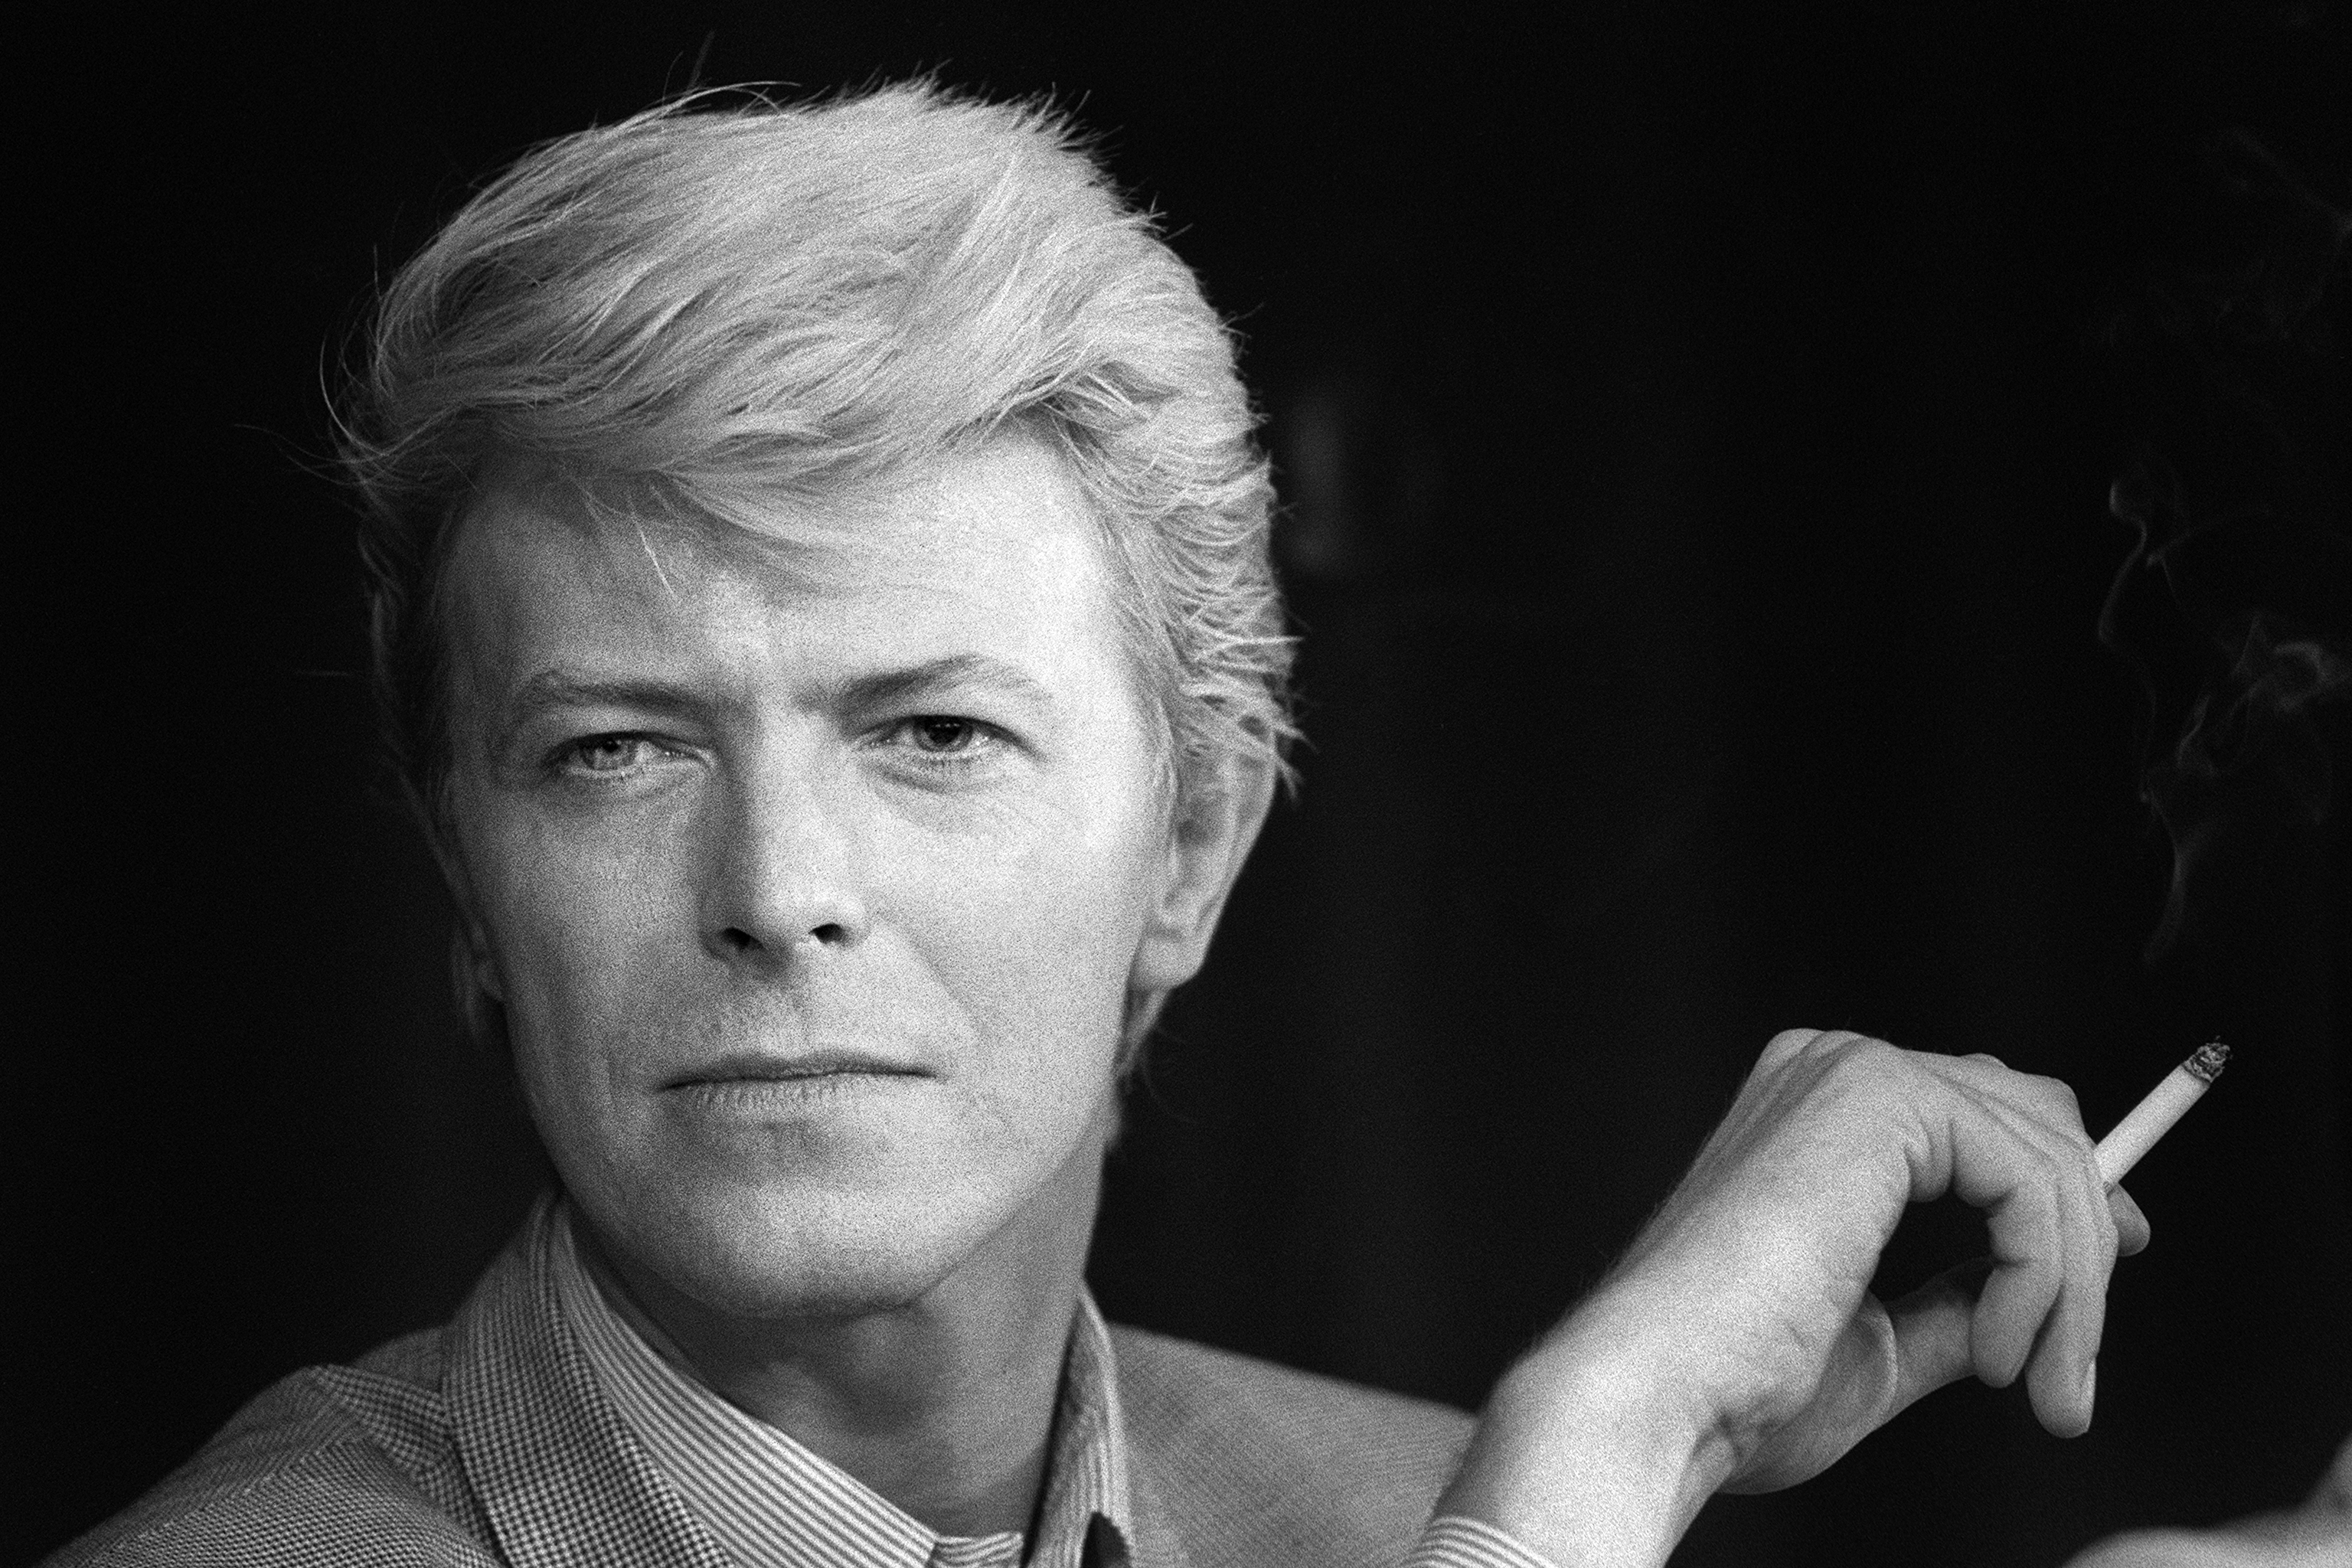 Icon Award: David Bowie